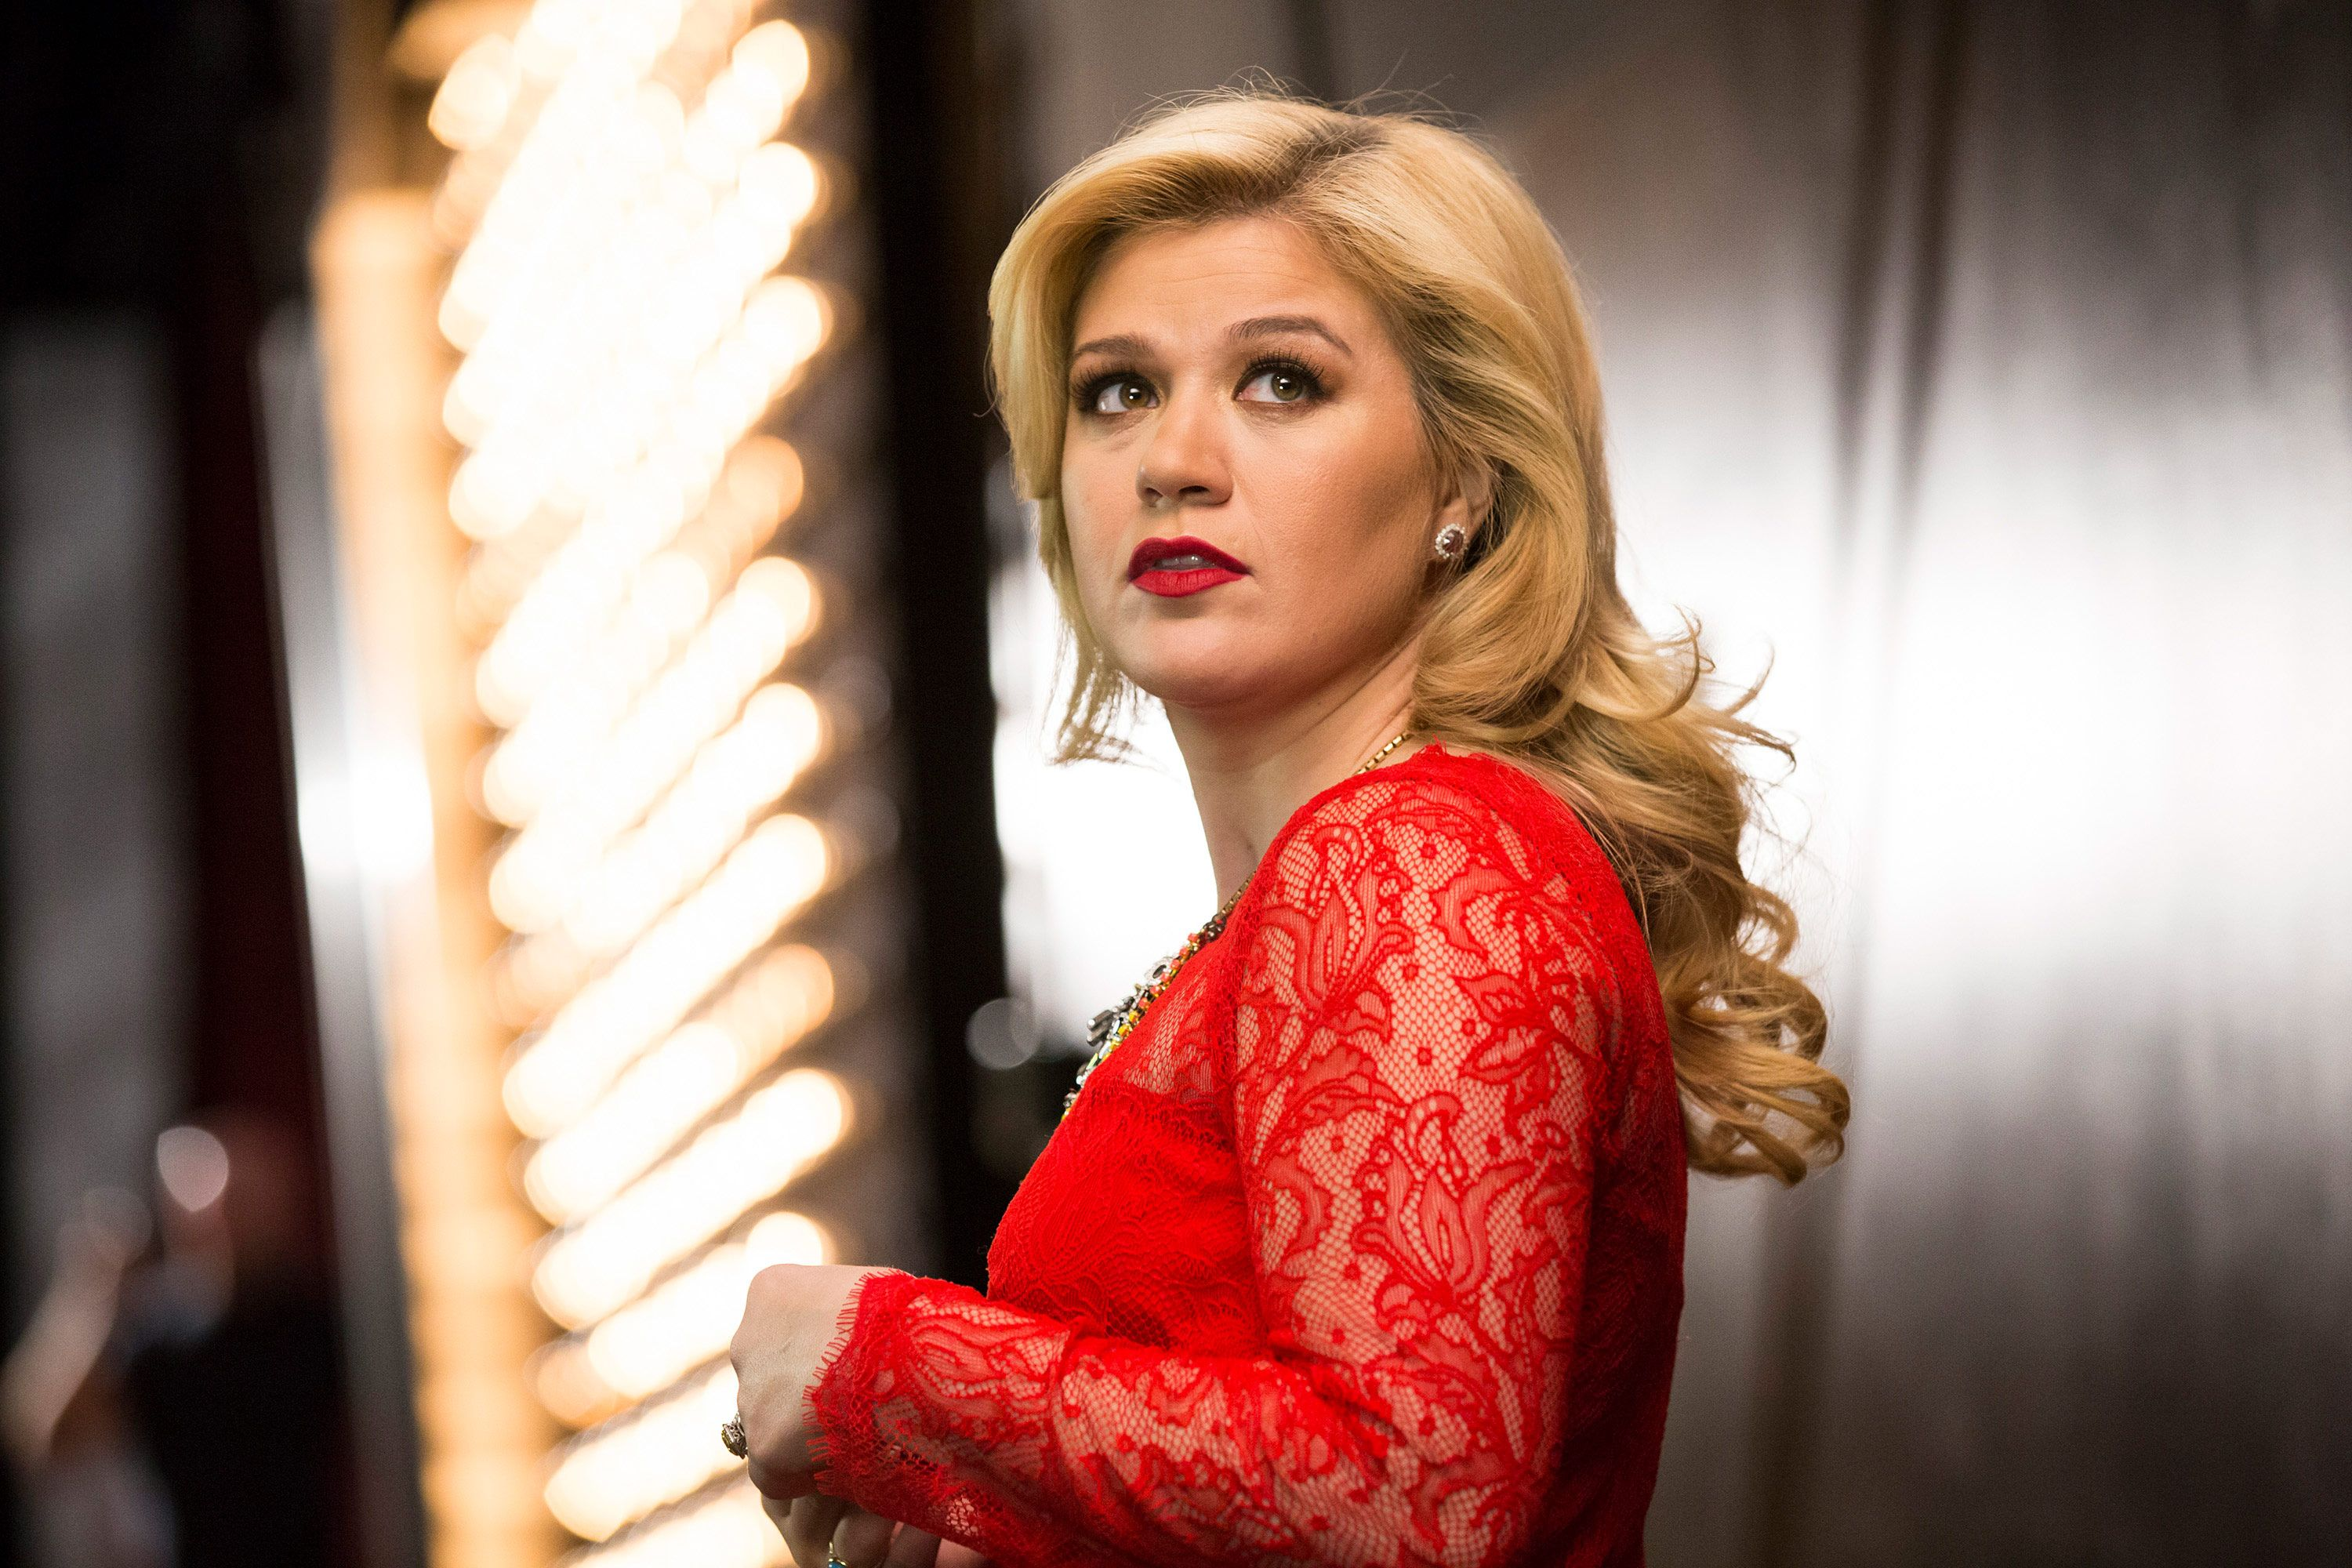 20 of the Absolute Best Kelly Clarkson Songs